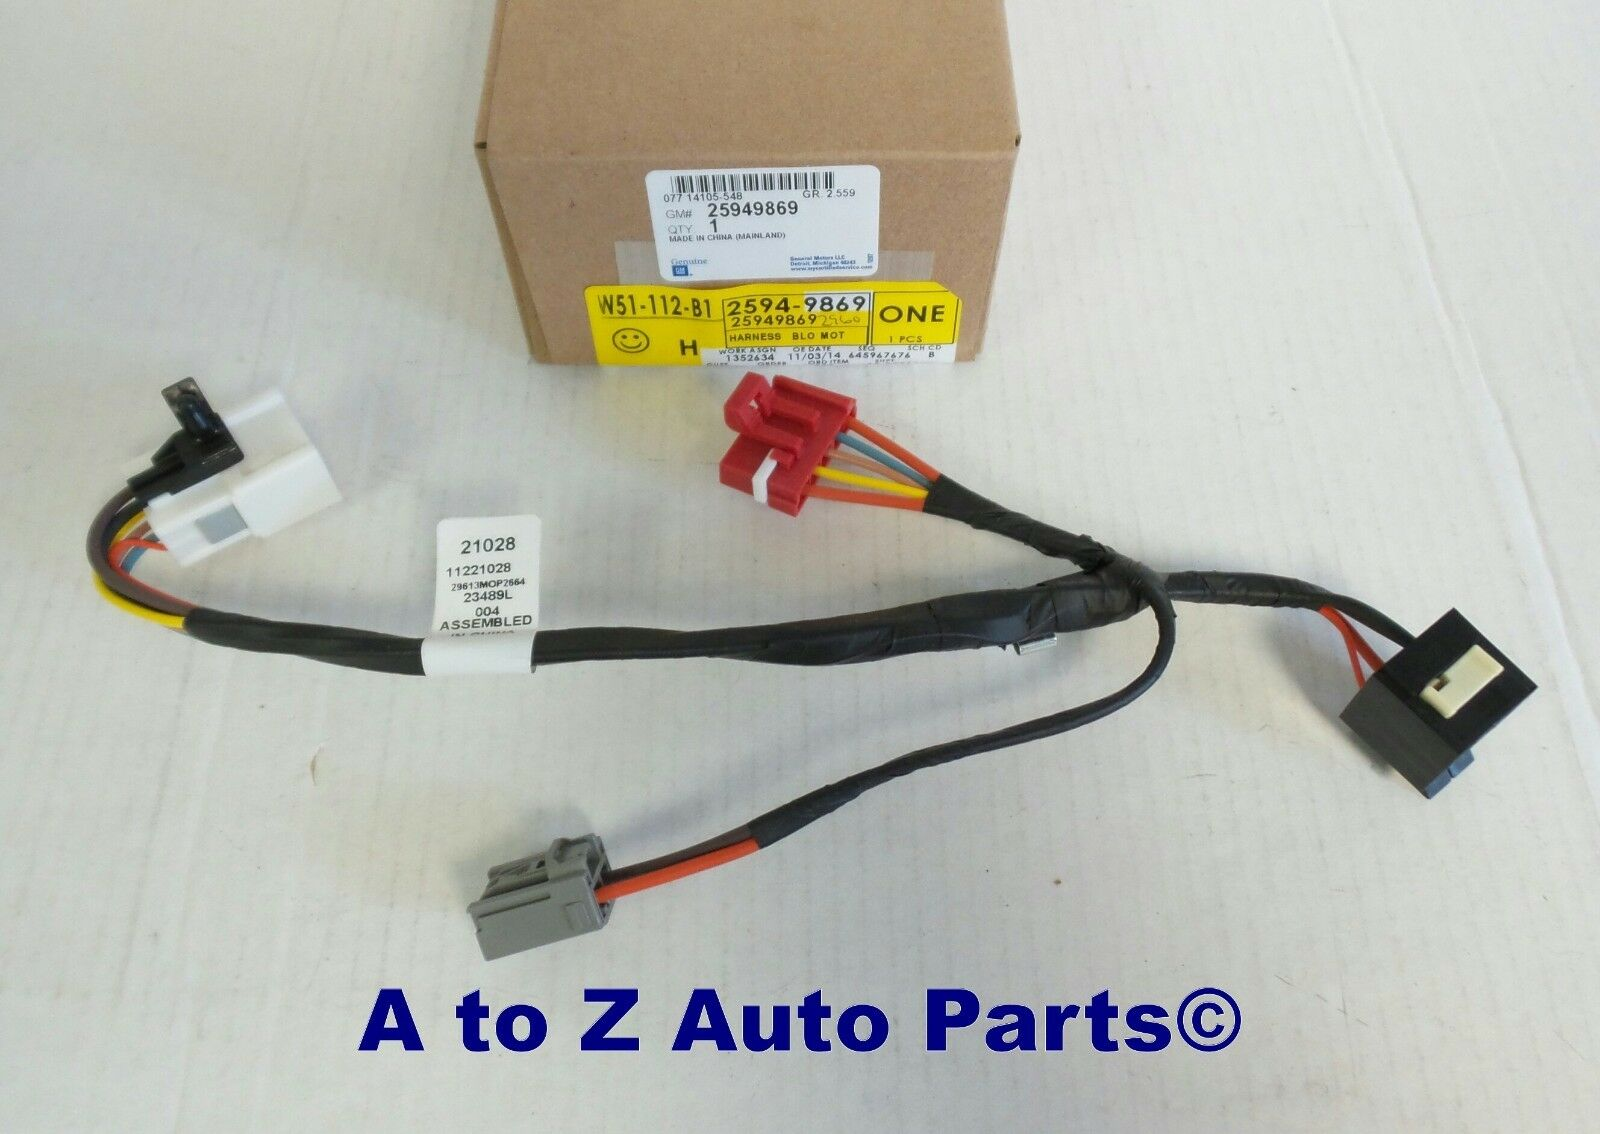 Oem Replacement Xc90 Blower Wiring Harness Schematic Diagrams New 06 10 Hummer H306 09 Soltice 07 Sky Motor Resistor